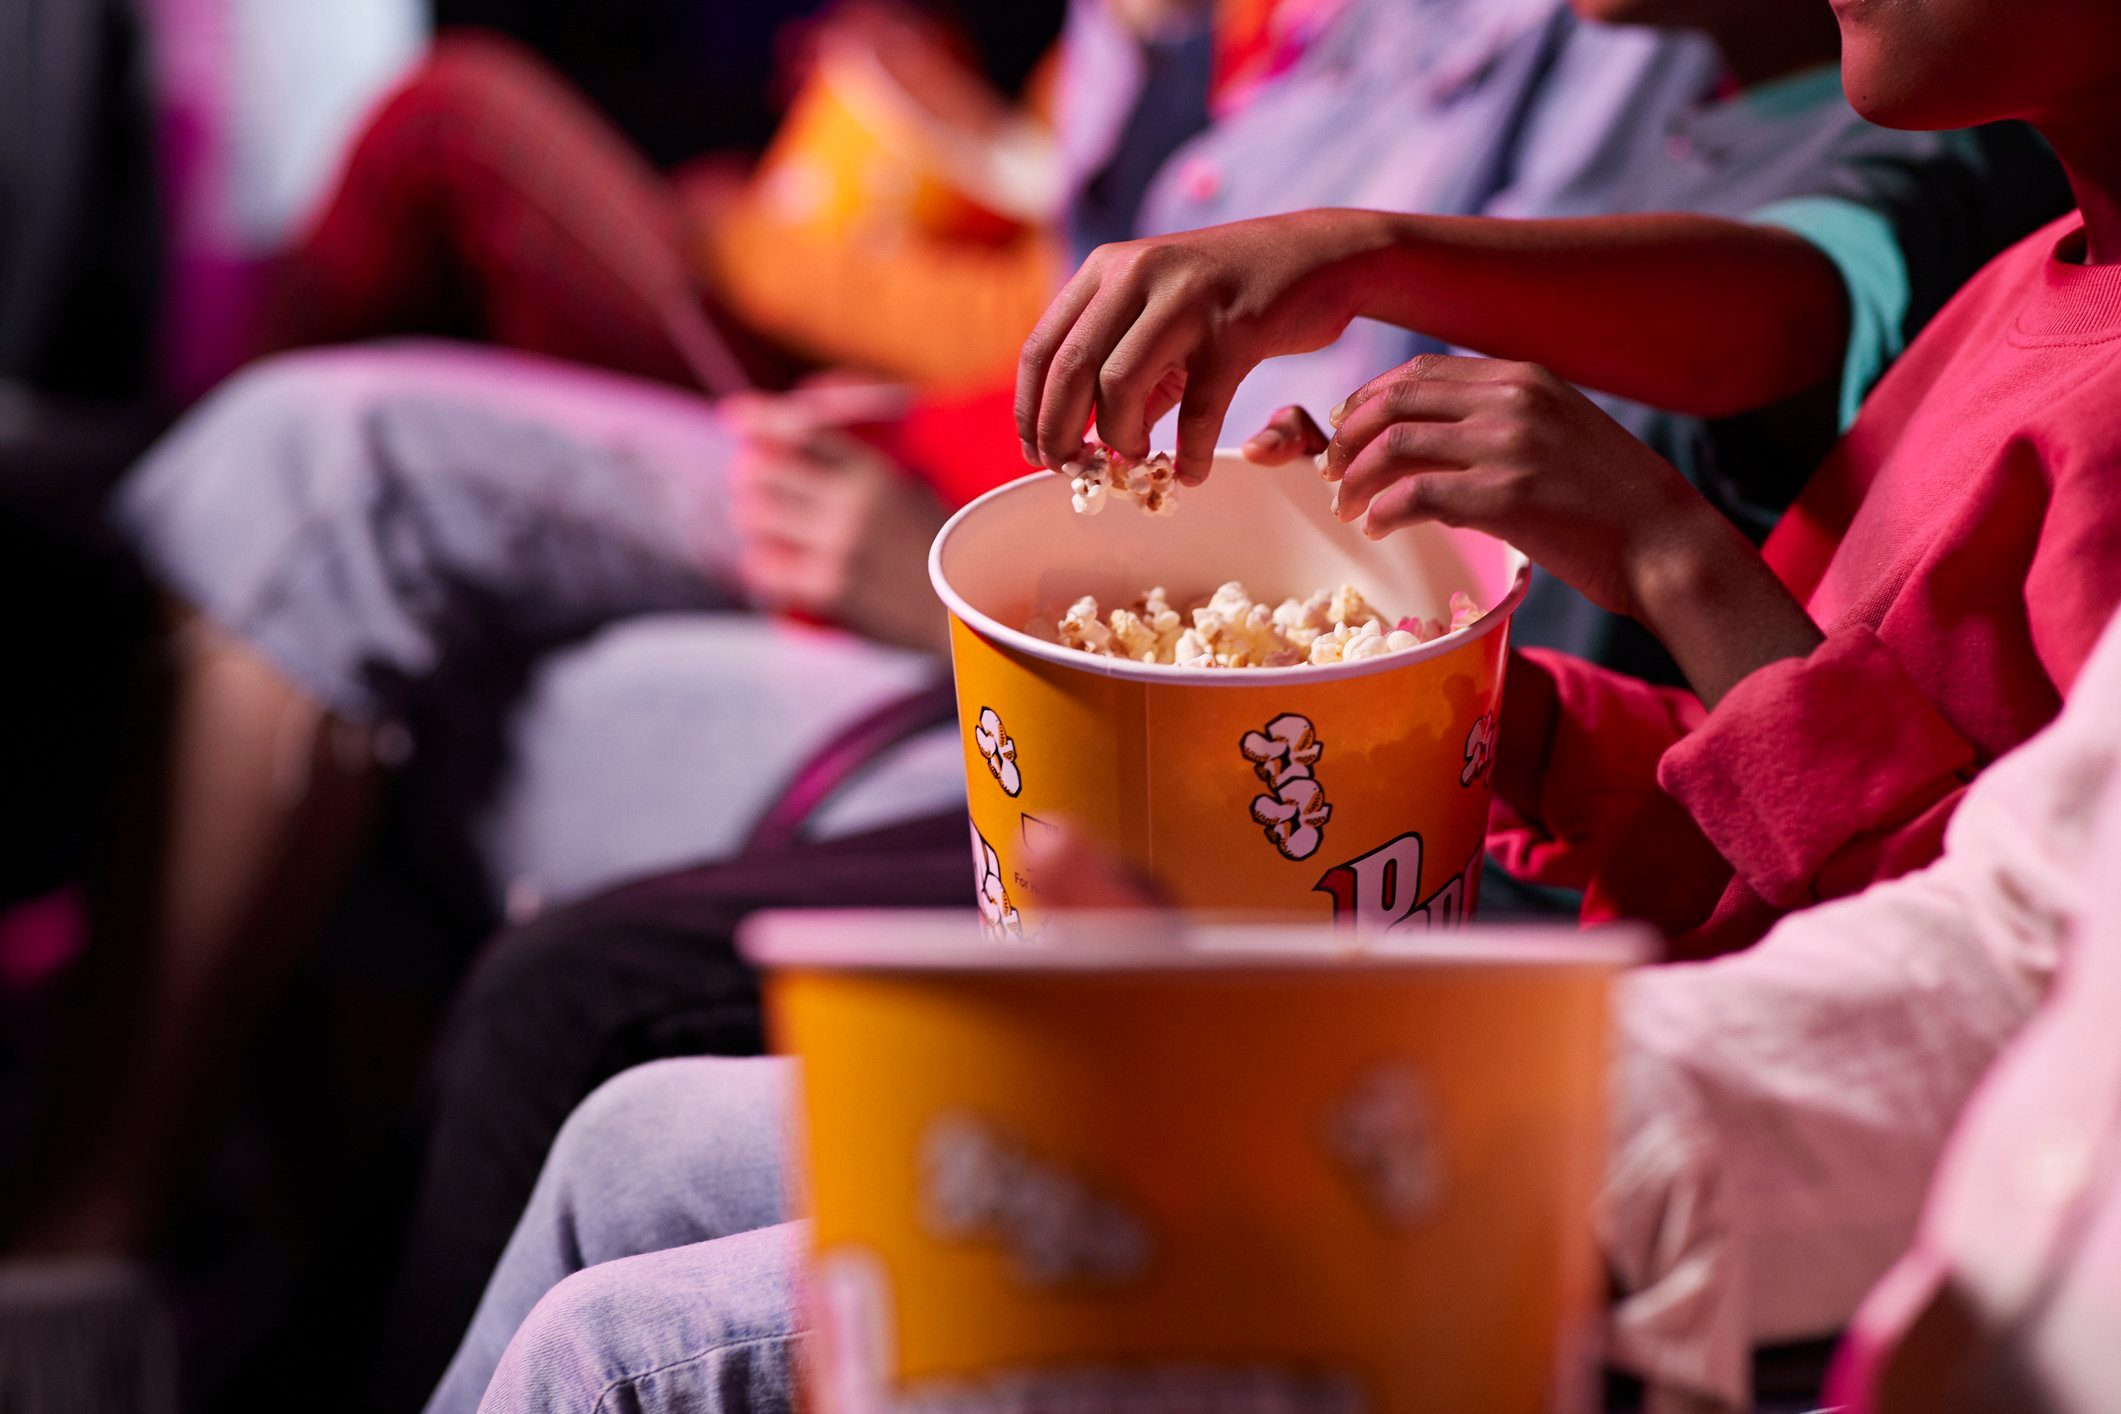 Midsection of friends sharing popcorn while sitting in theater